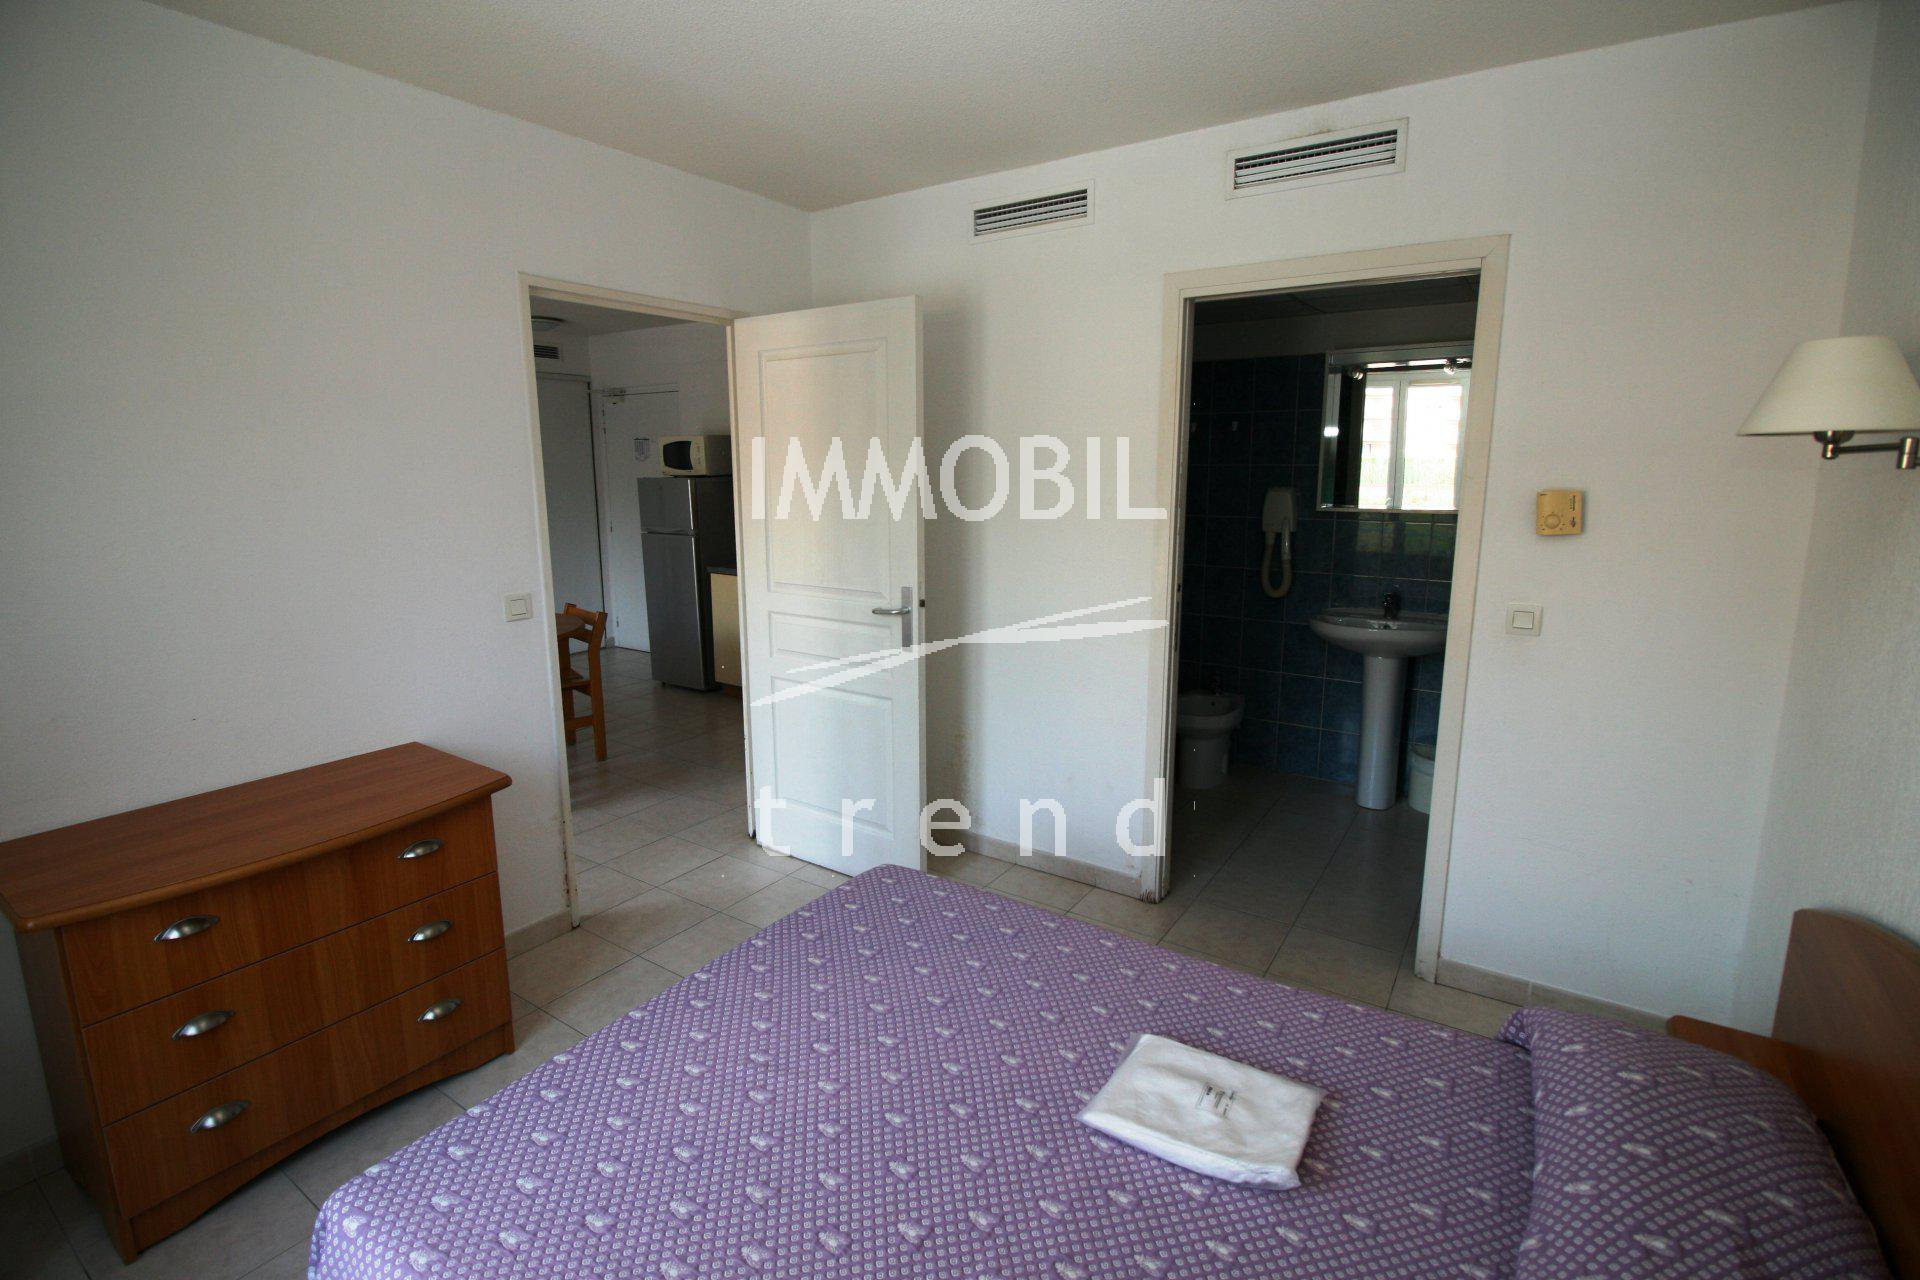 Immobilier Roquebrune Cap Martin 2 pieces avec parking